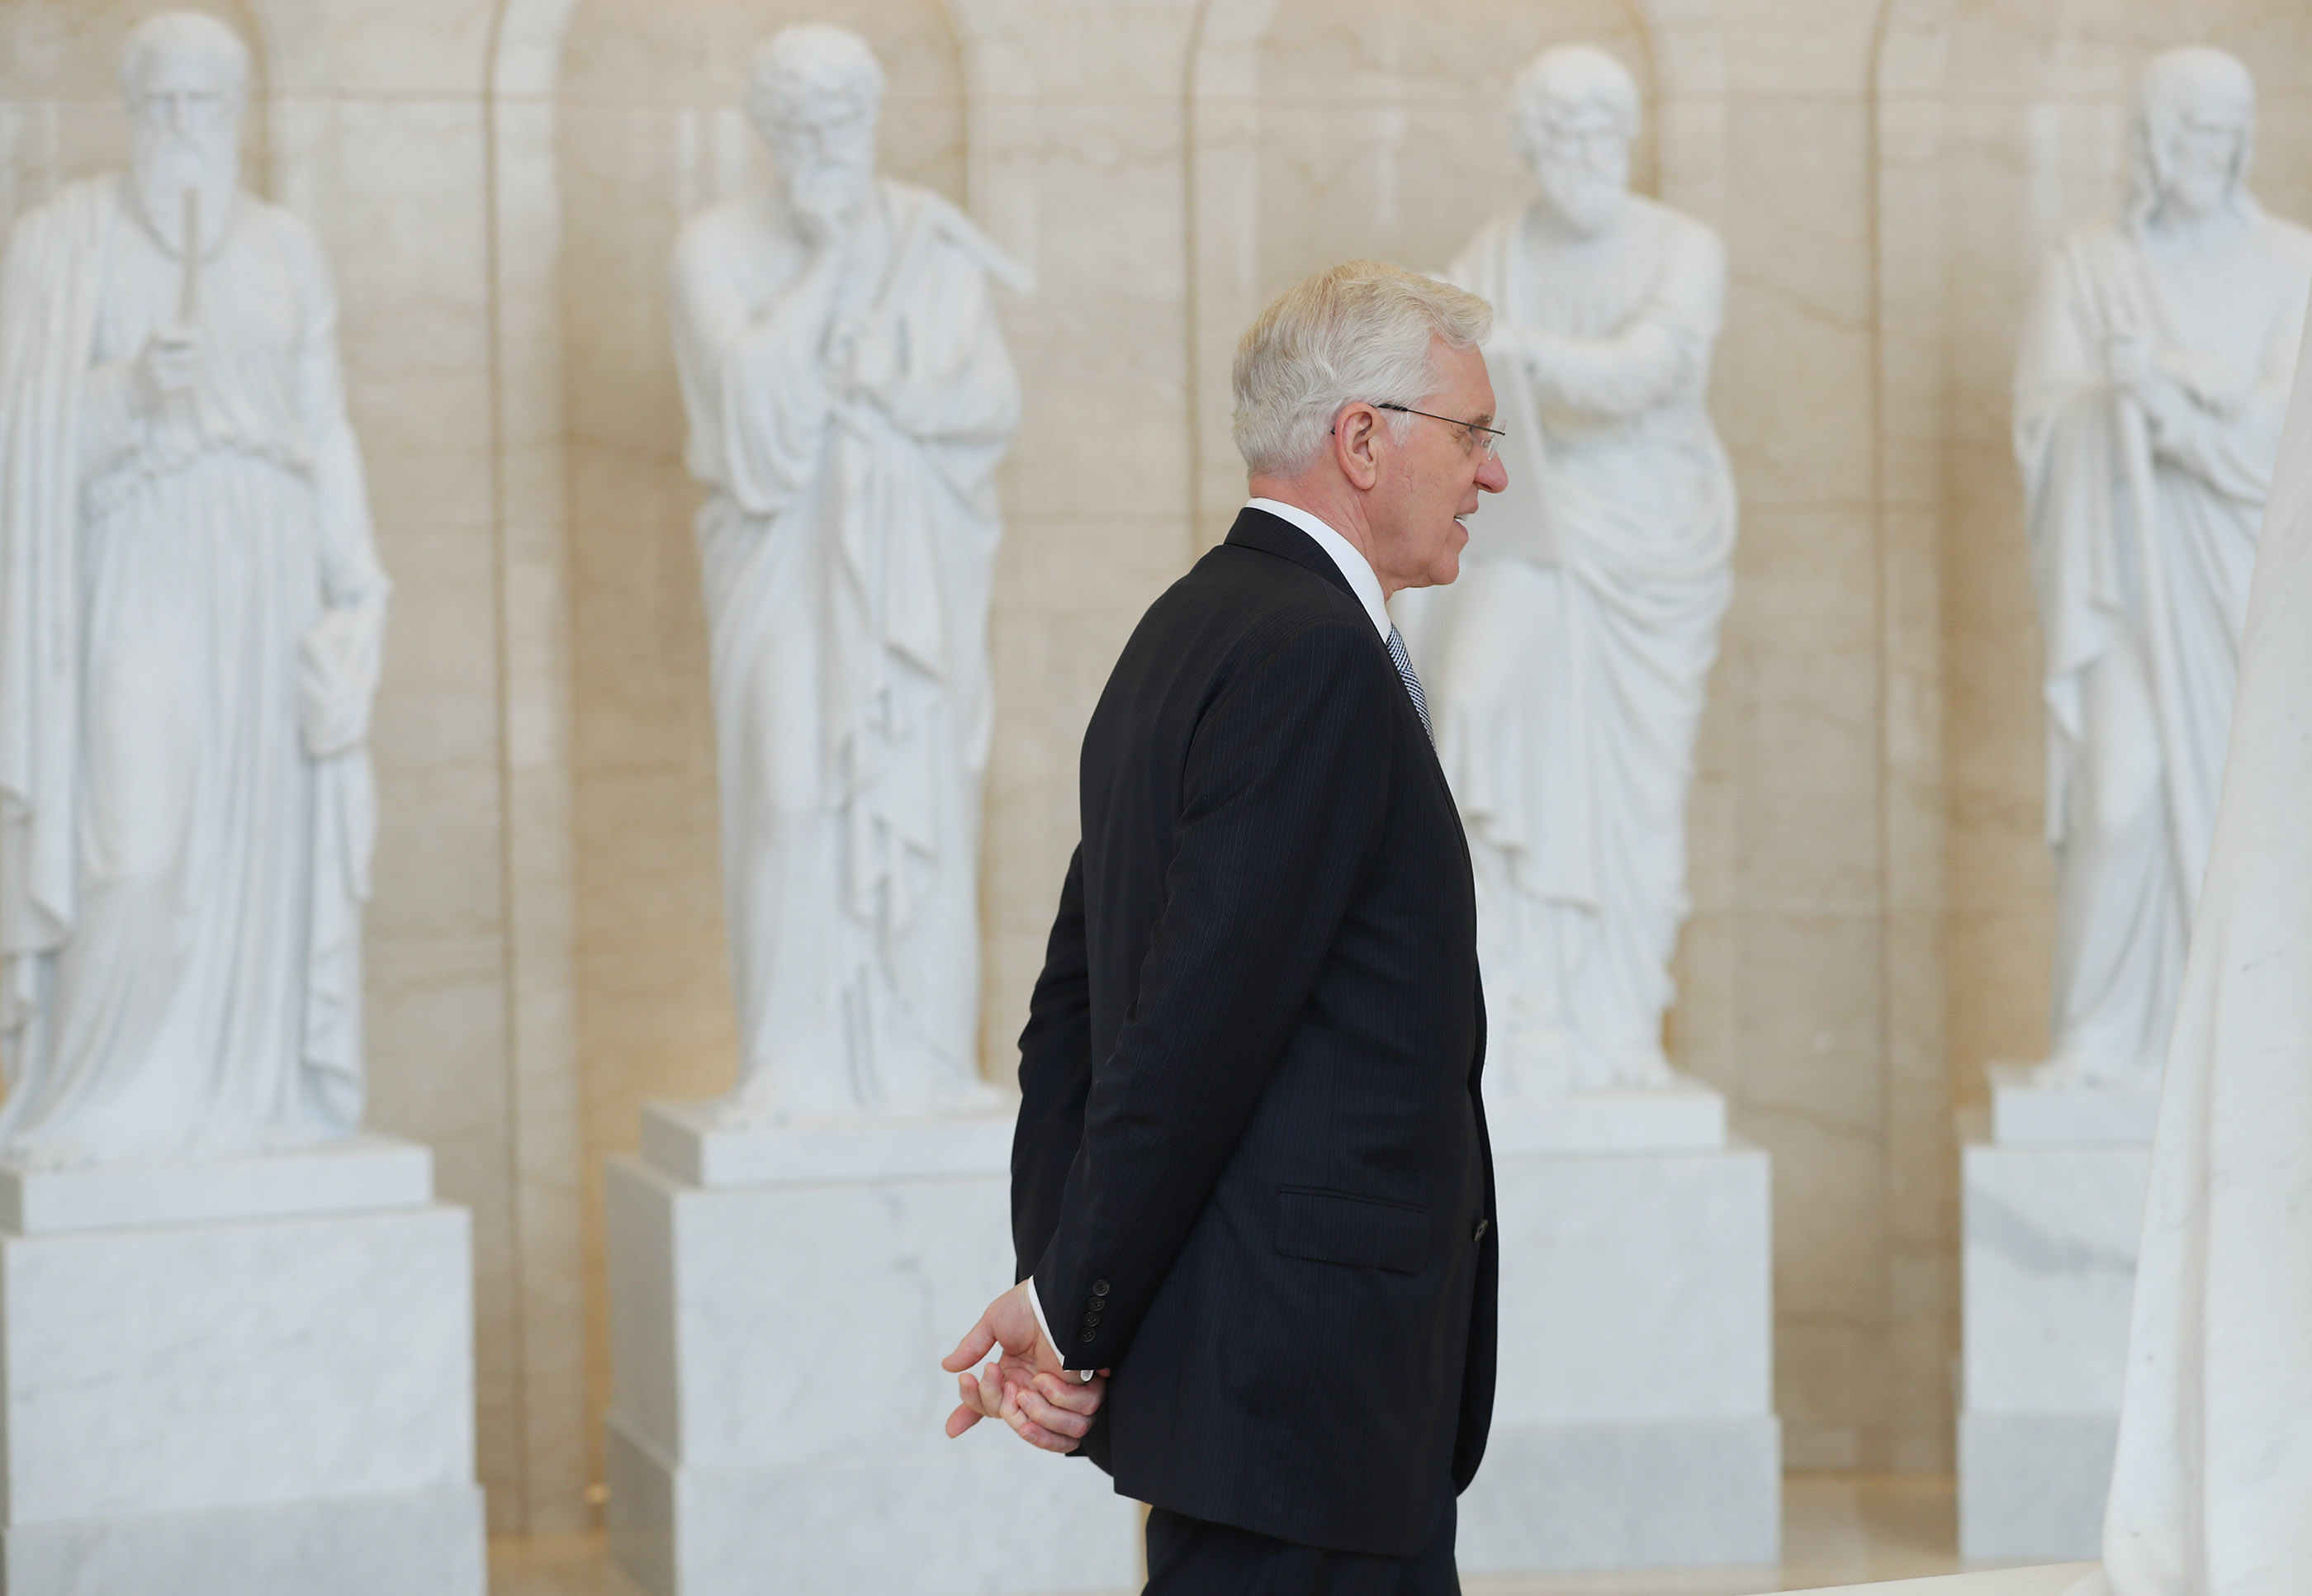 Elder D. Todd Christofferson, of the Quorum of the Twelve Apostles of The Church of Jesus Christ of Latter-day Saints, walks through the Rome Italy Temple visitors' center in Rome, Italy on Monday, March 11, 2019.